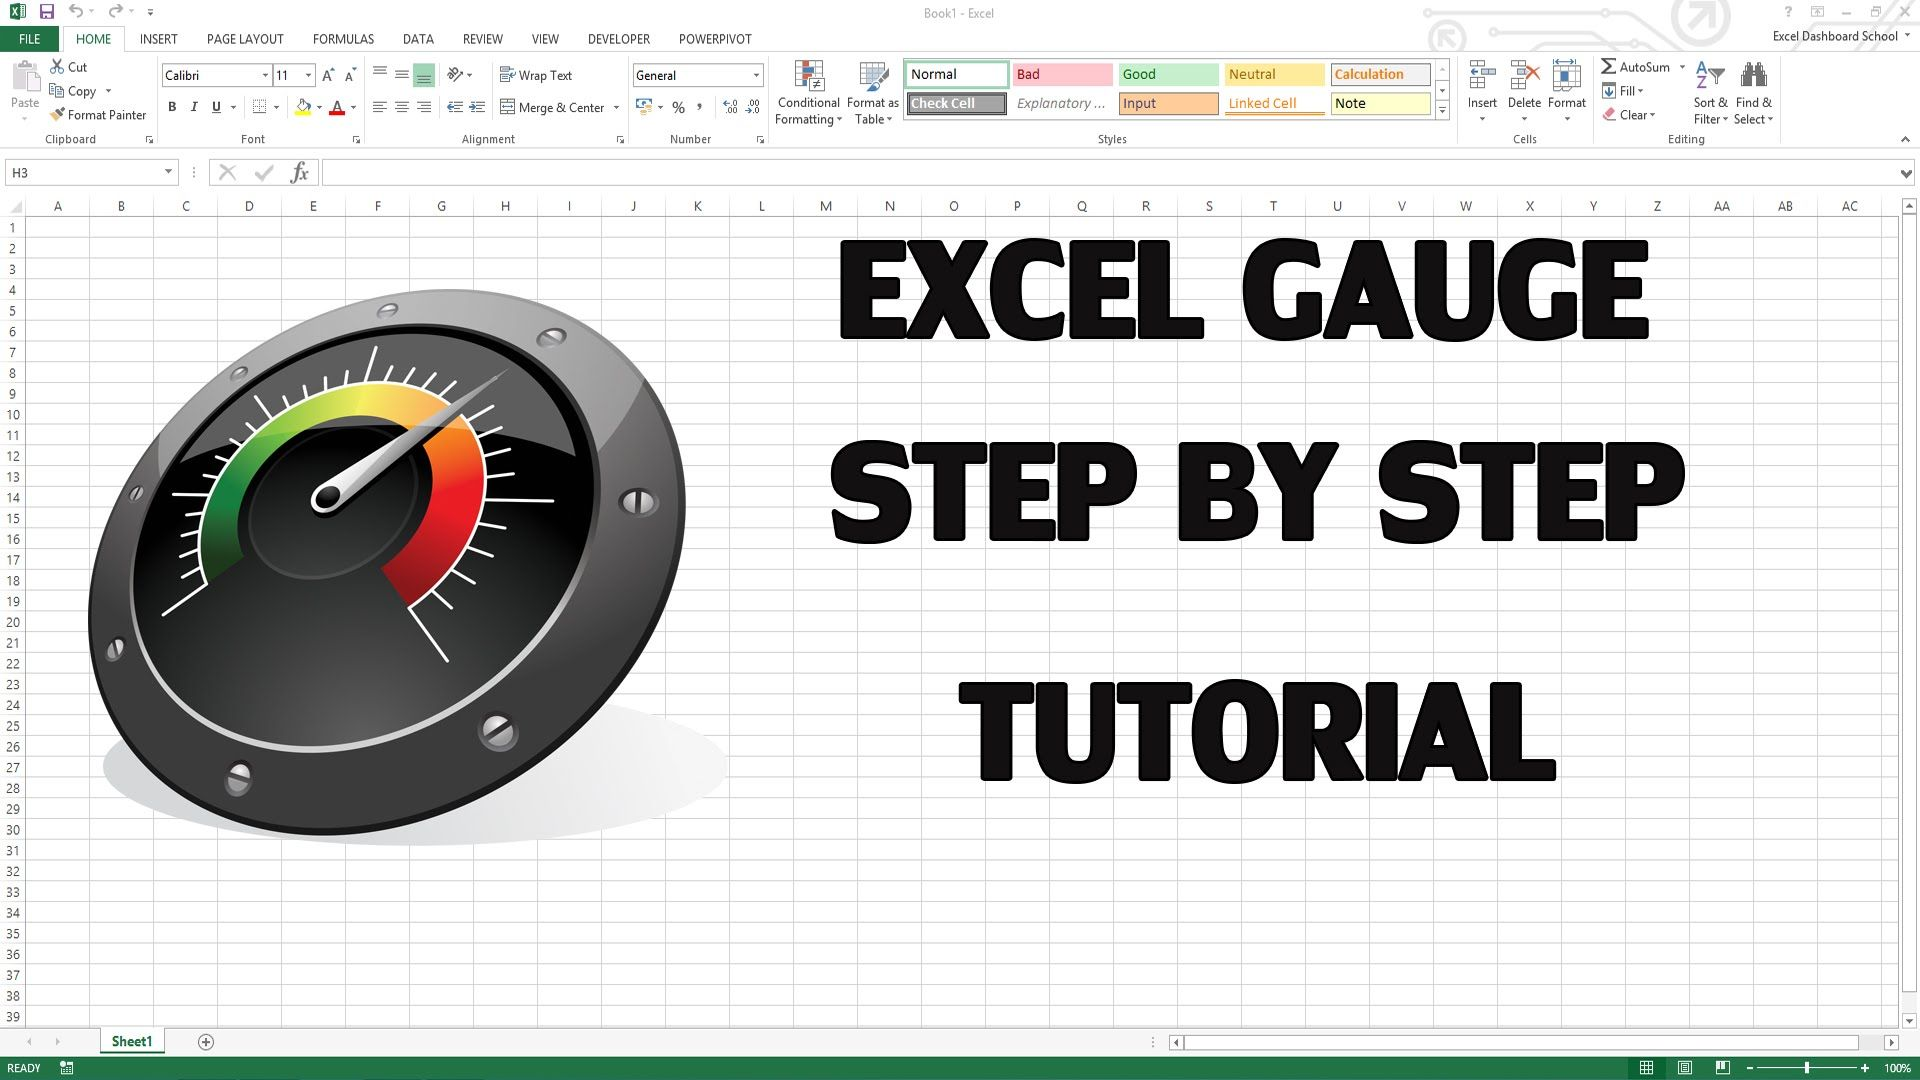 How To Create Excel Kpi Dashboard With Gauge Control Visit Our Gauge Maker Add In Https Exceldashboardschool Excel Dashboard Templates Kpi Dashboard Excel Excel dashboard gauges free download